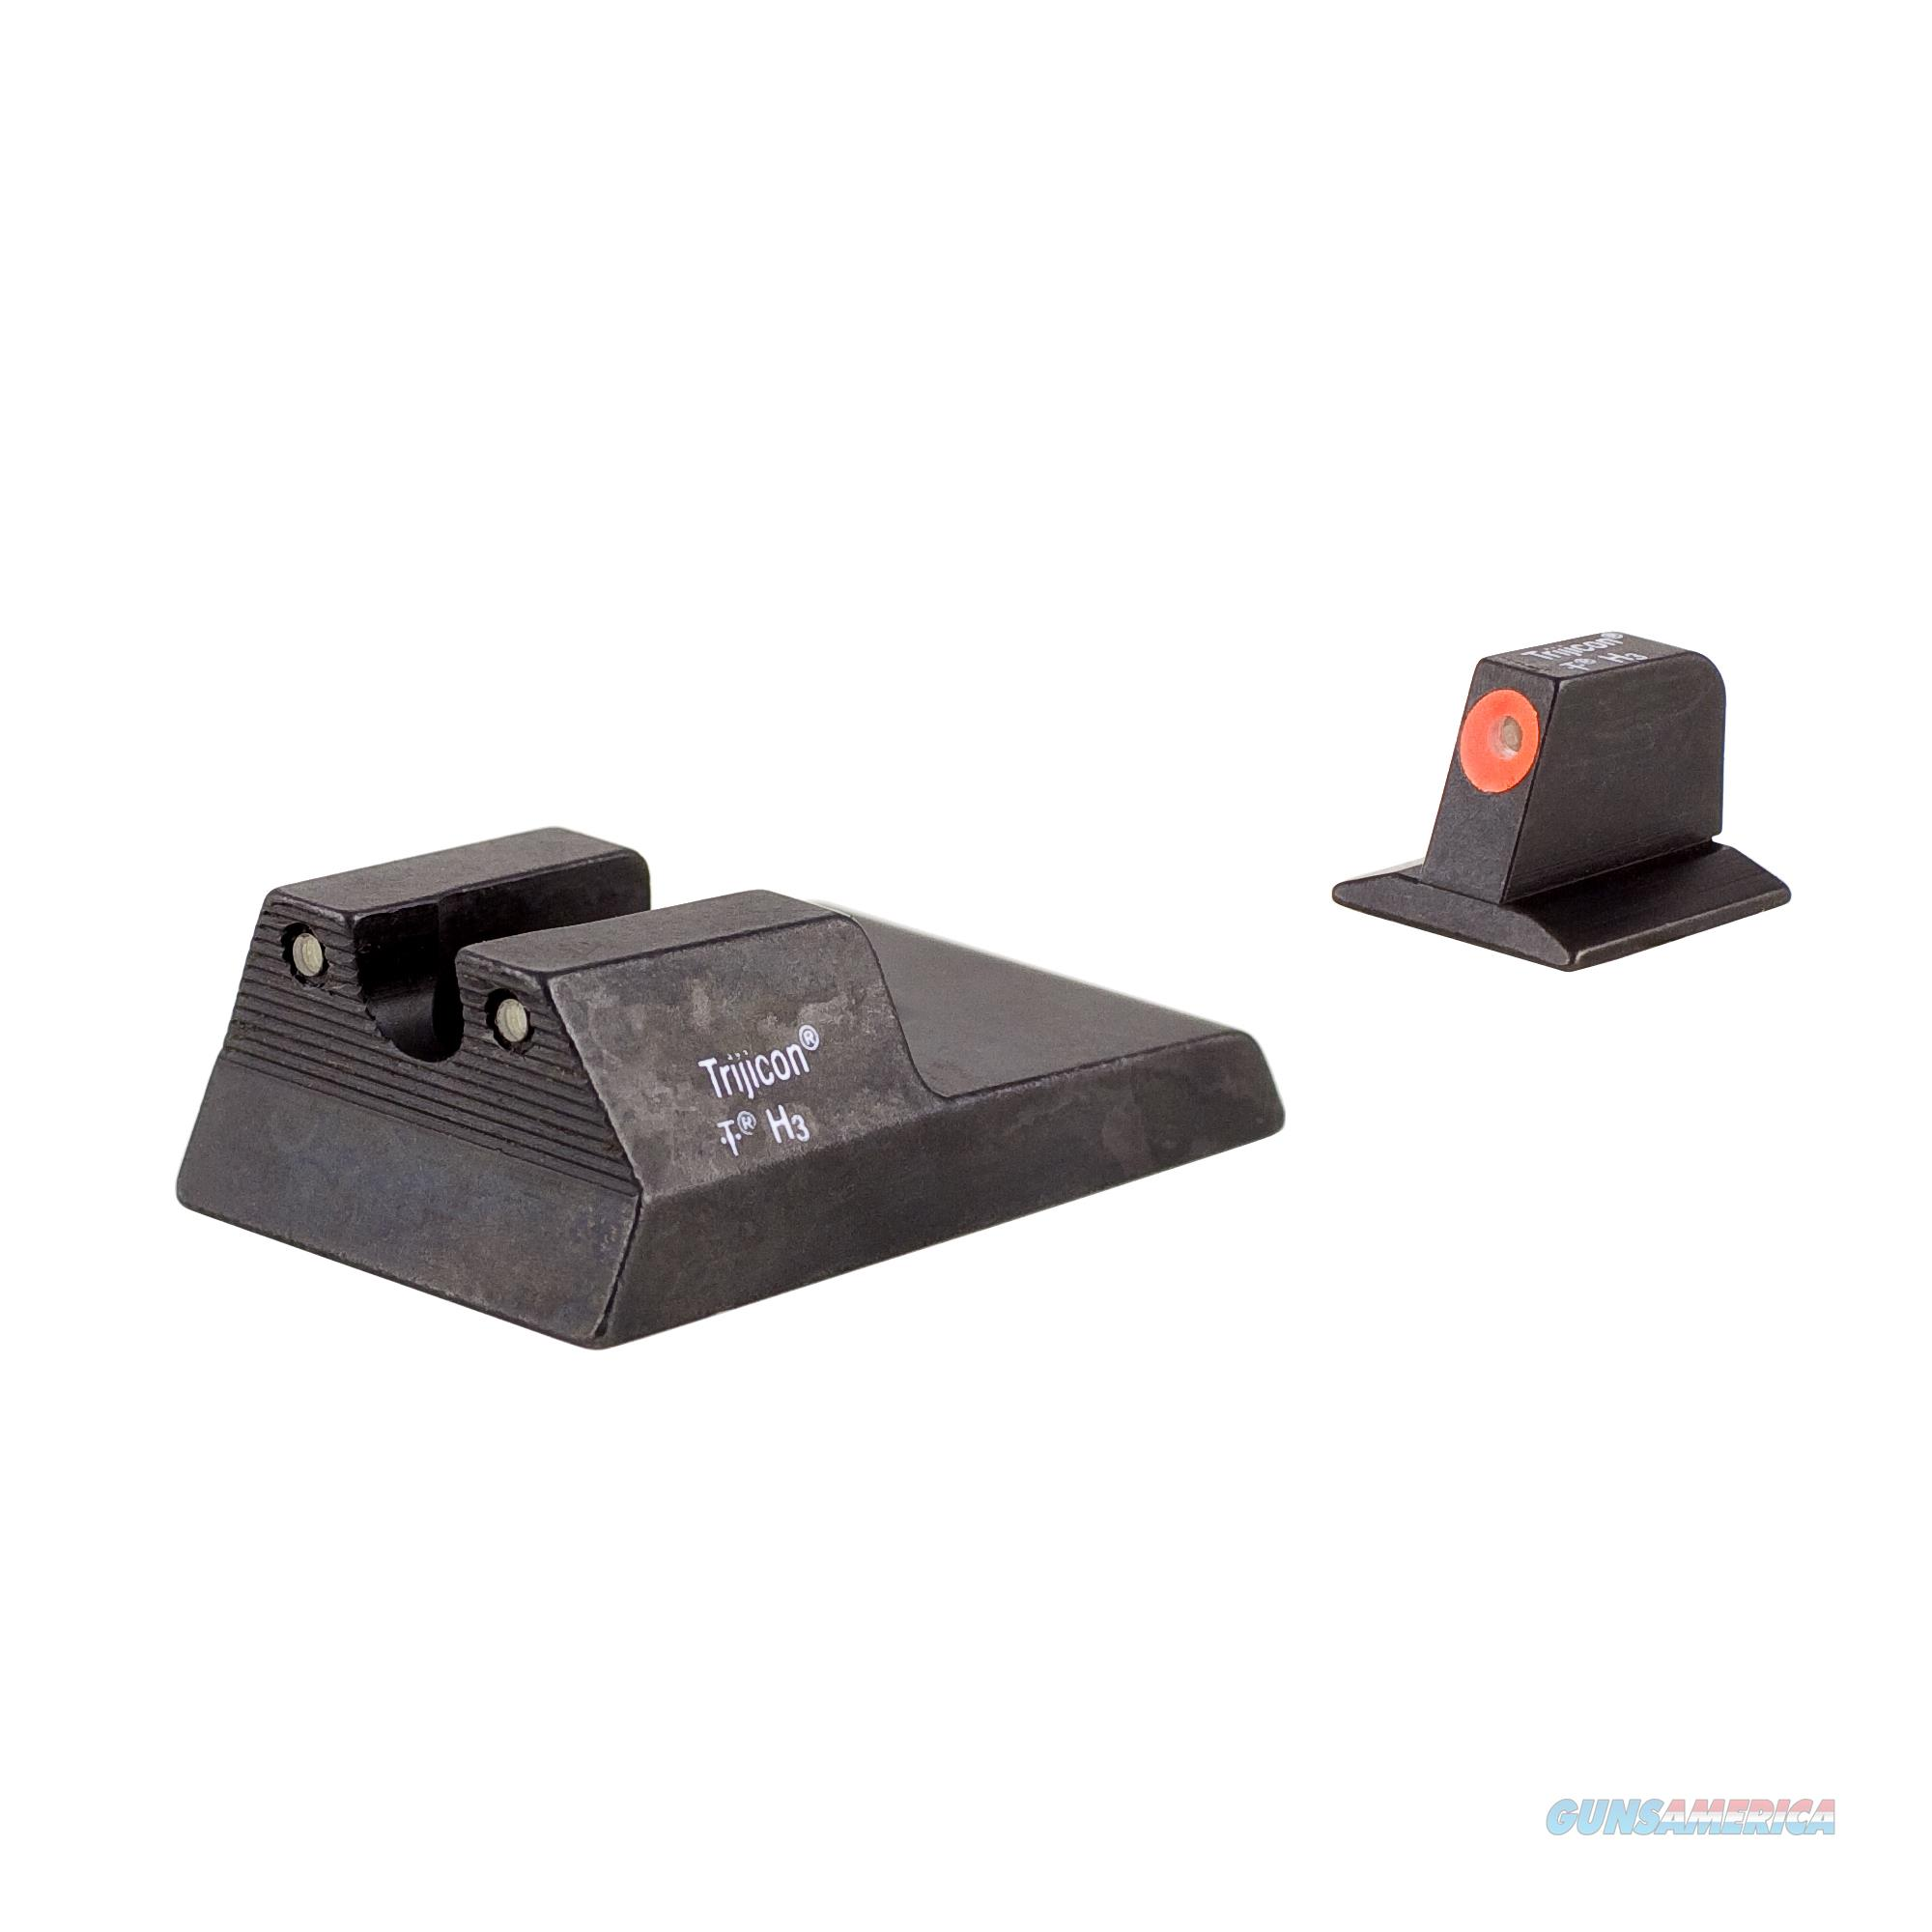 Trijicon Ruger Hd Night Sight Set RA115O  Non-Guns > Iron/Metal/Peep Sights